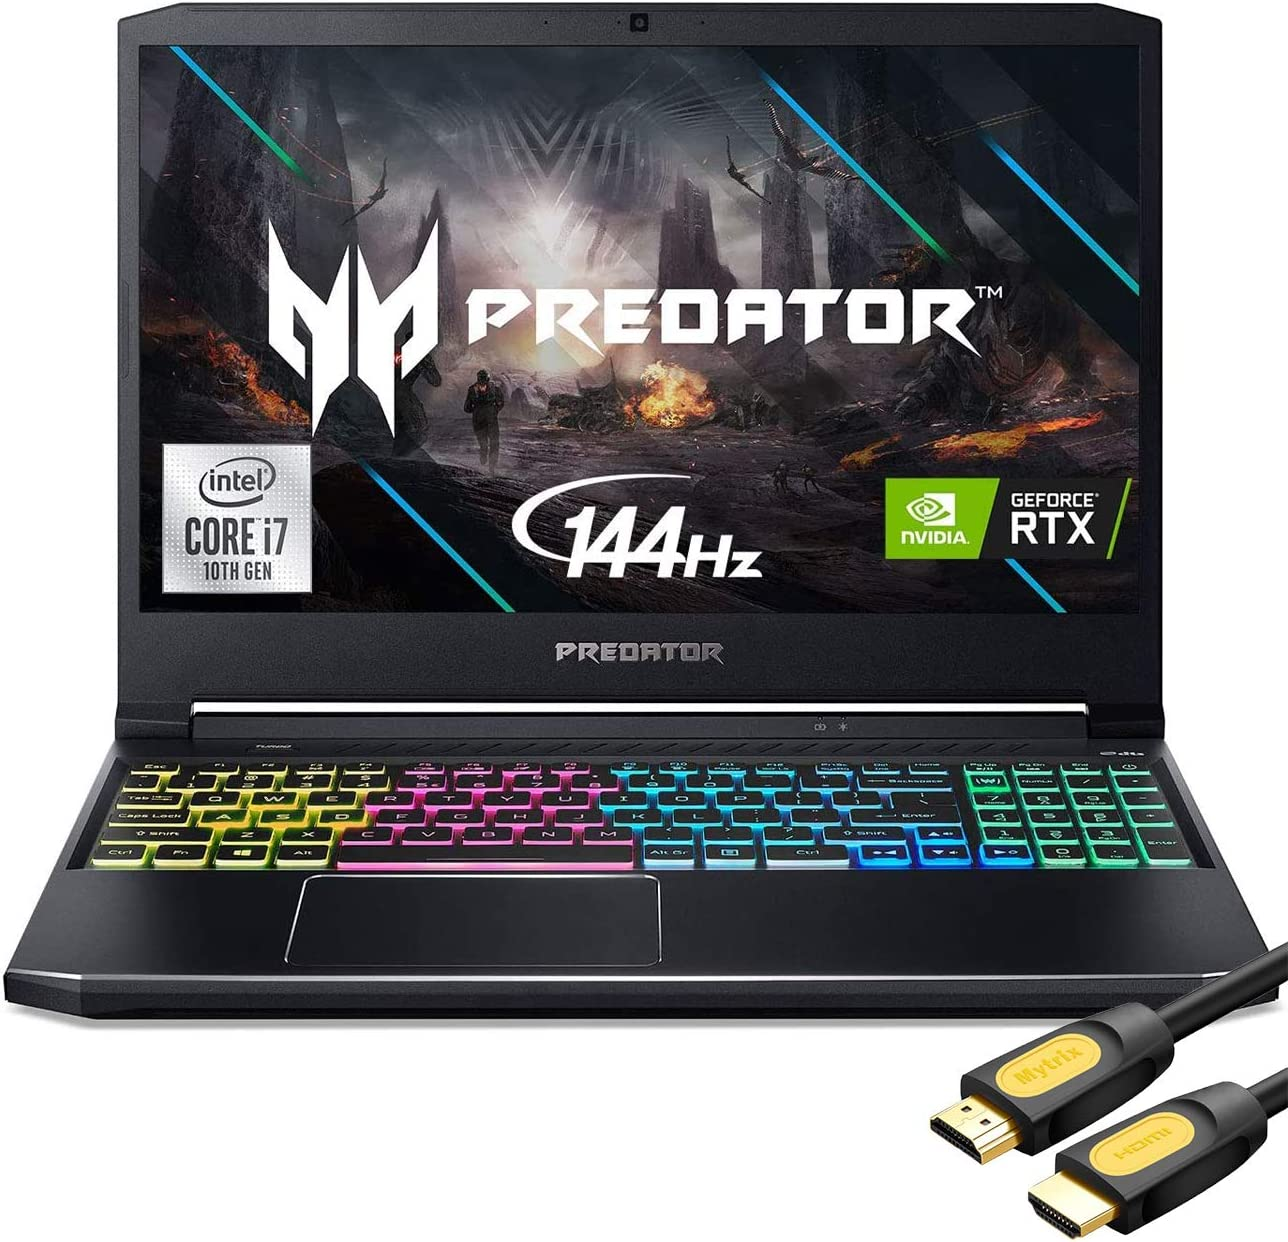 "Acer Predator Helios 300 144Hz Gaming Laptop, 15.6"" 3ms IPS FHD, RTX 2060 OC, i7-10750H 6-Cores up to 5.00 GHz, 32GB RAM, 1TB SSD+2TB SSHD, Killer Network, RGB KB, Mytrix HDMI Cable, Win 10"